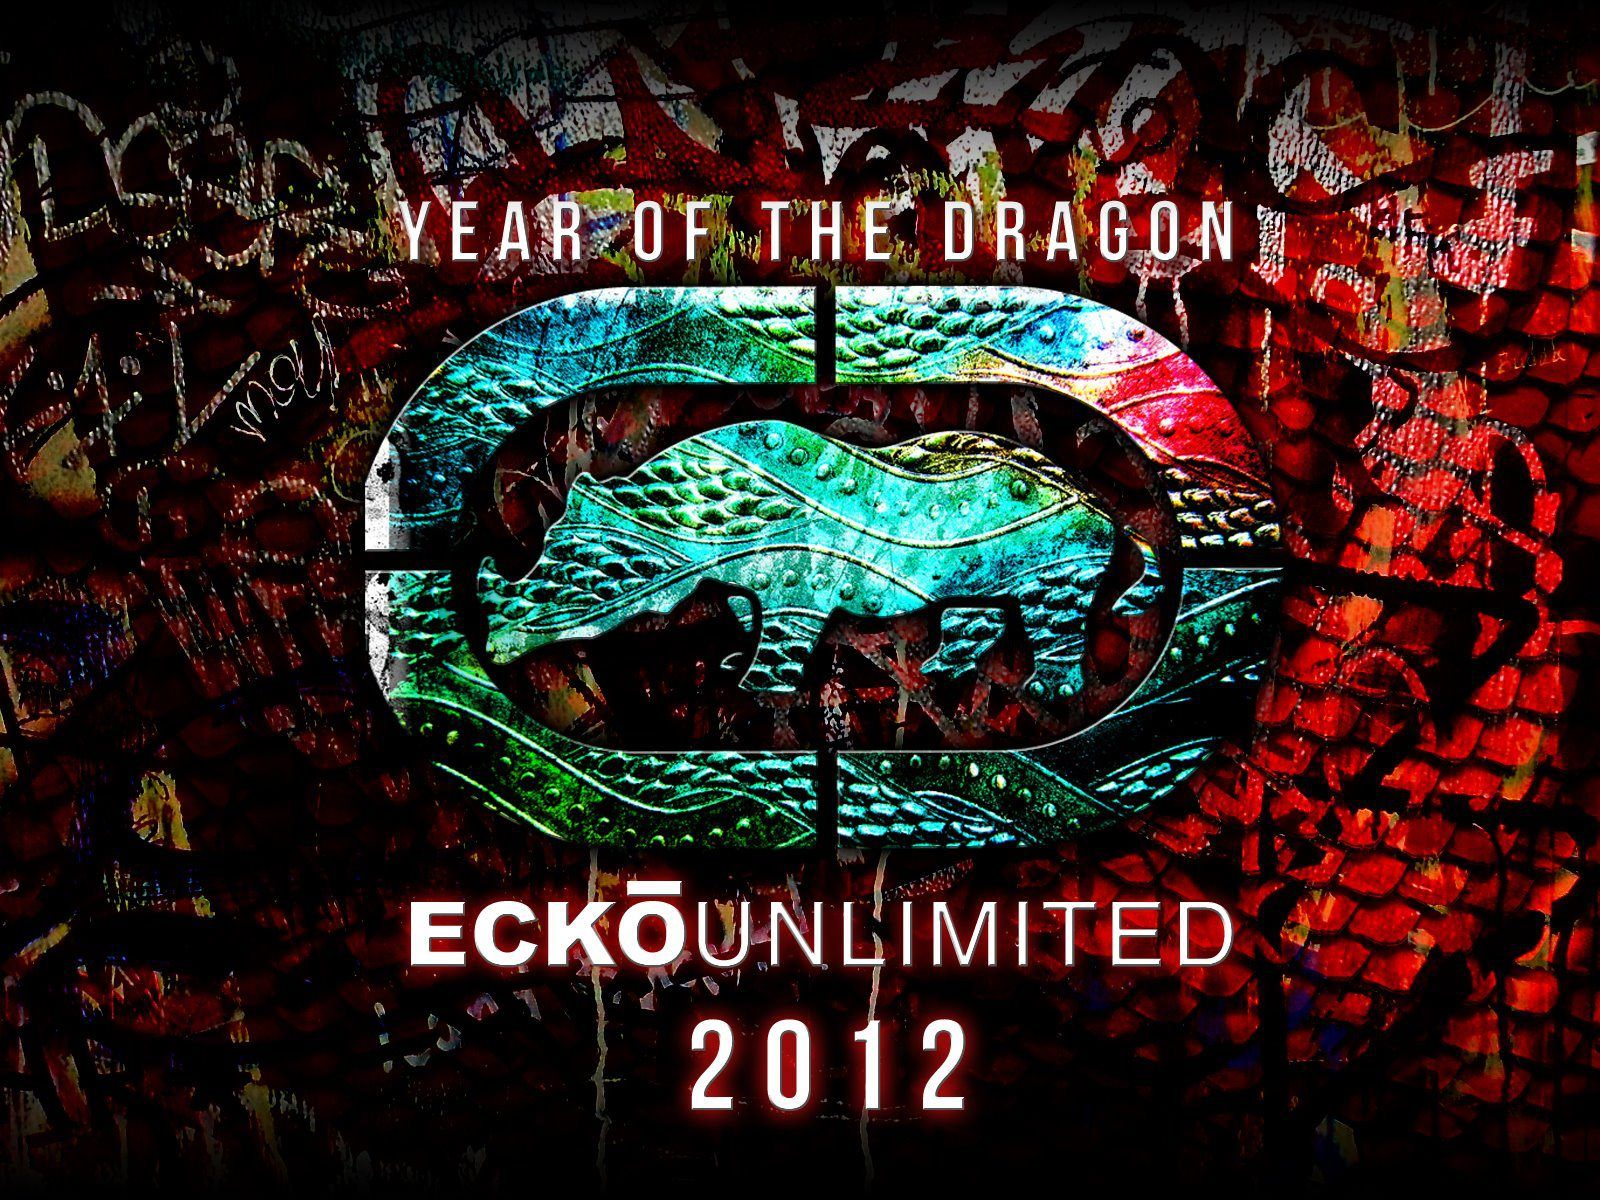 Google themes ecko - Ecko Unlimited Year Of The Dragon